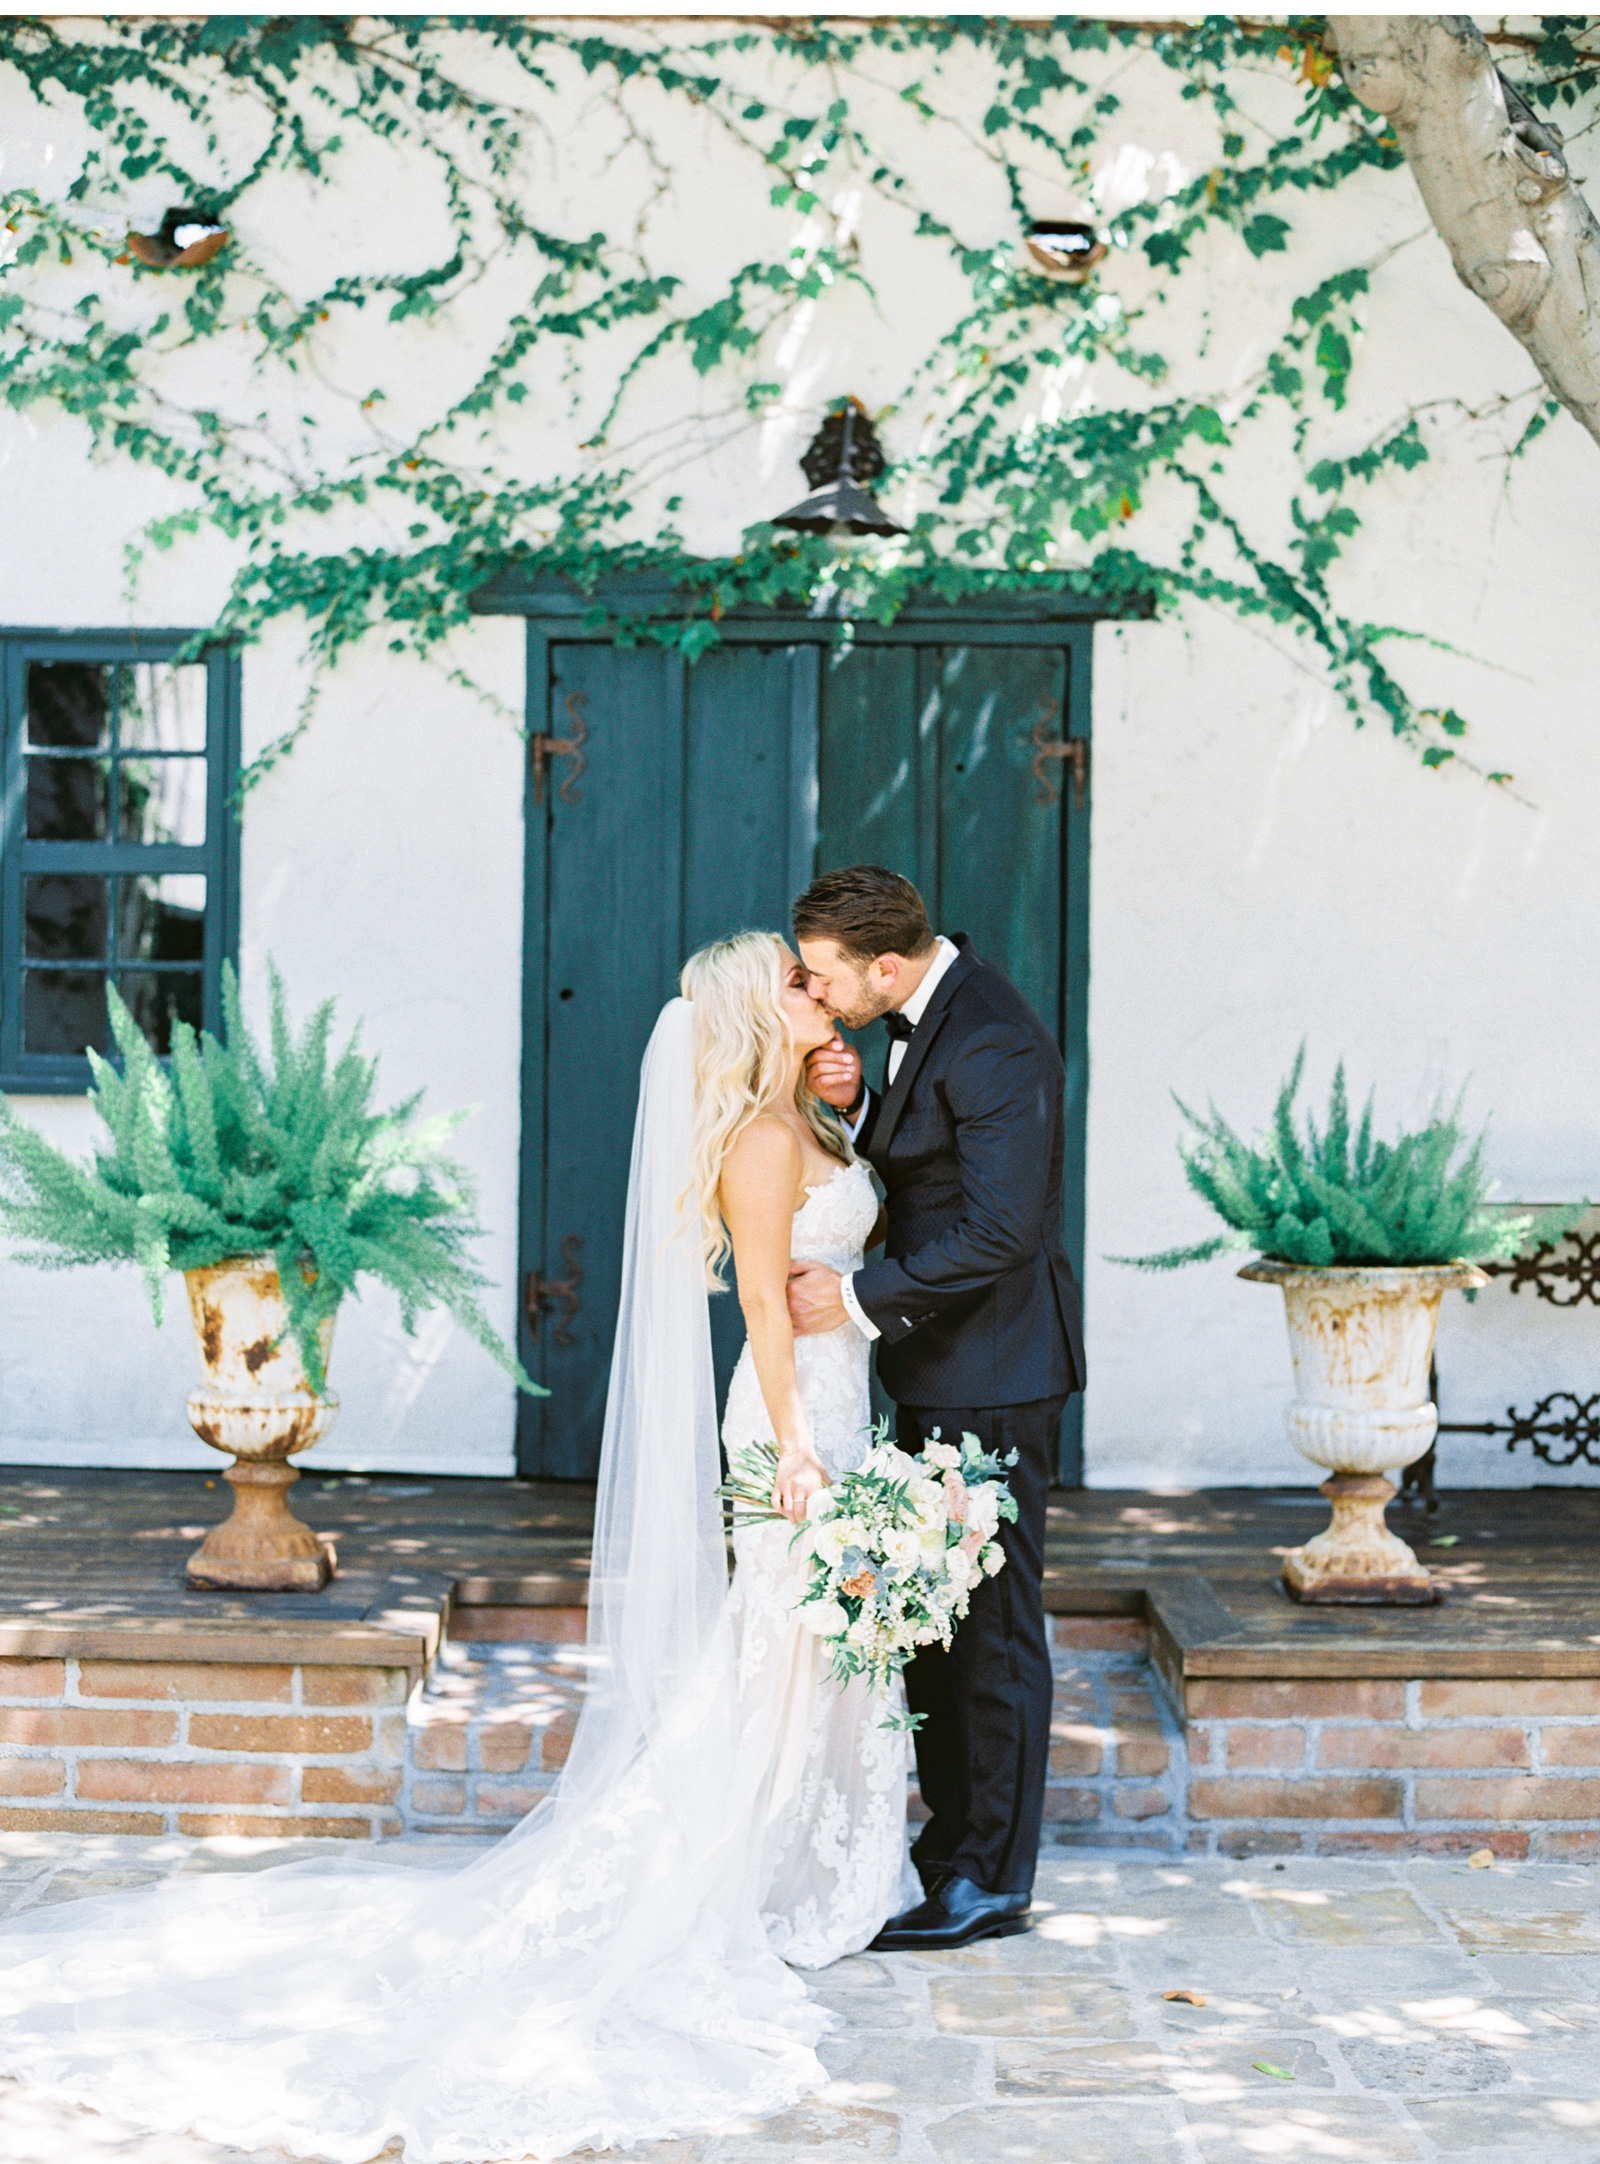 San-Juan-Capistrano-Wedding-Photographer-Southern-California-Wedding-Venues-Malibu-Wedding-Photographer-Natalie-Schutt-Photography_06.jpg